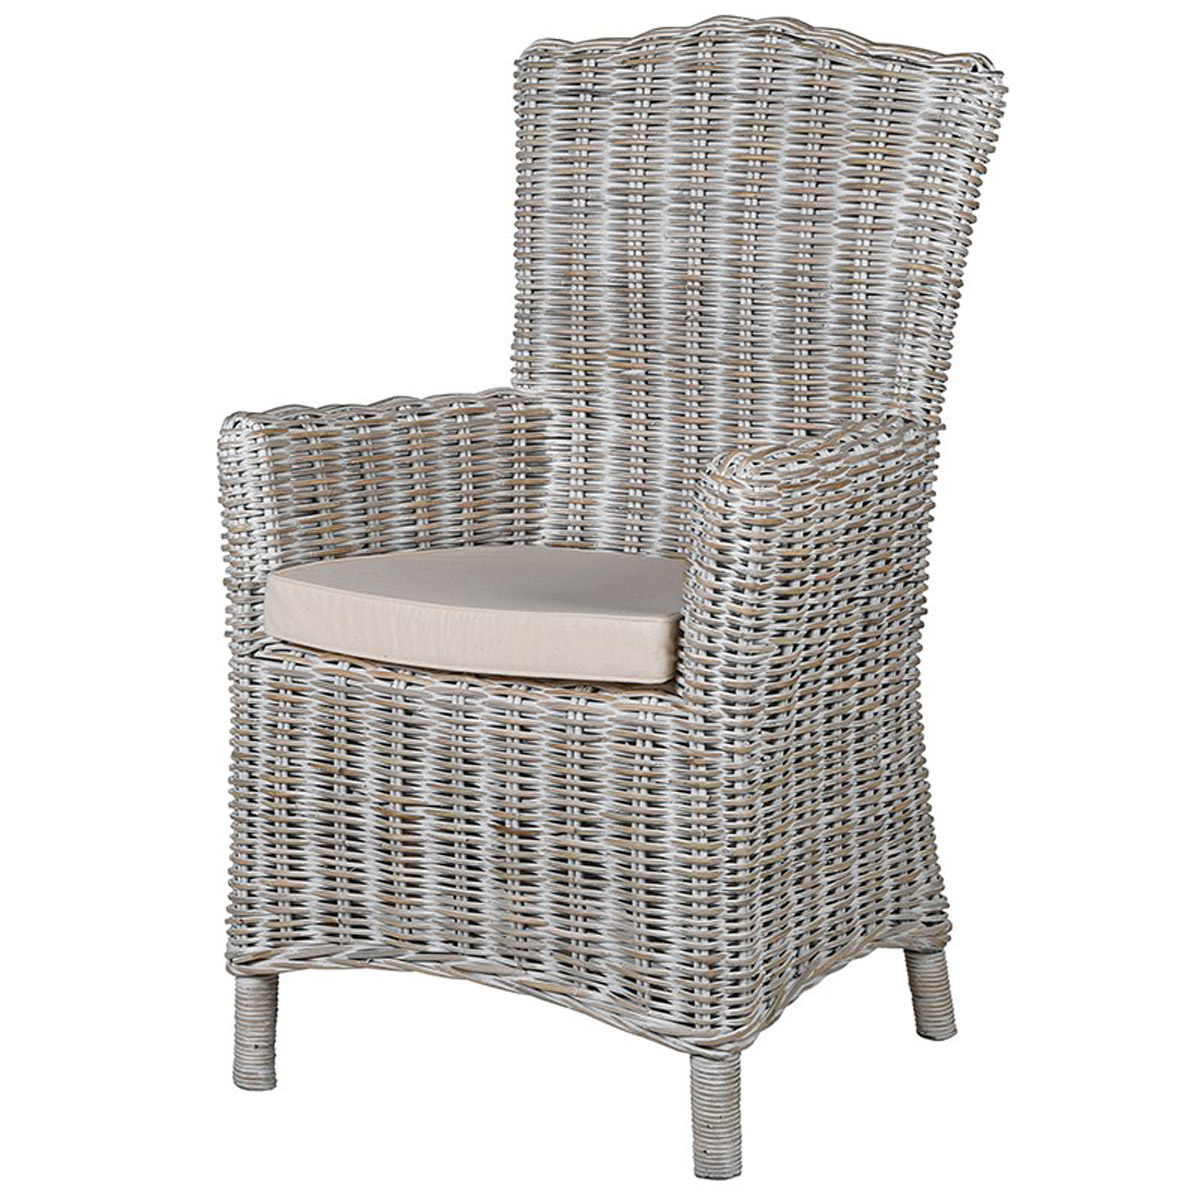 Admirable White Wash Grey Wicker Chair Ncnpc Chair Design For Home Ncnpcorg